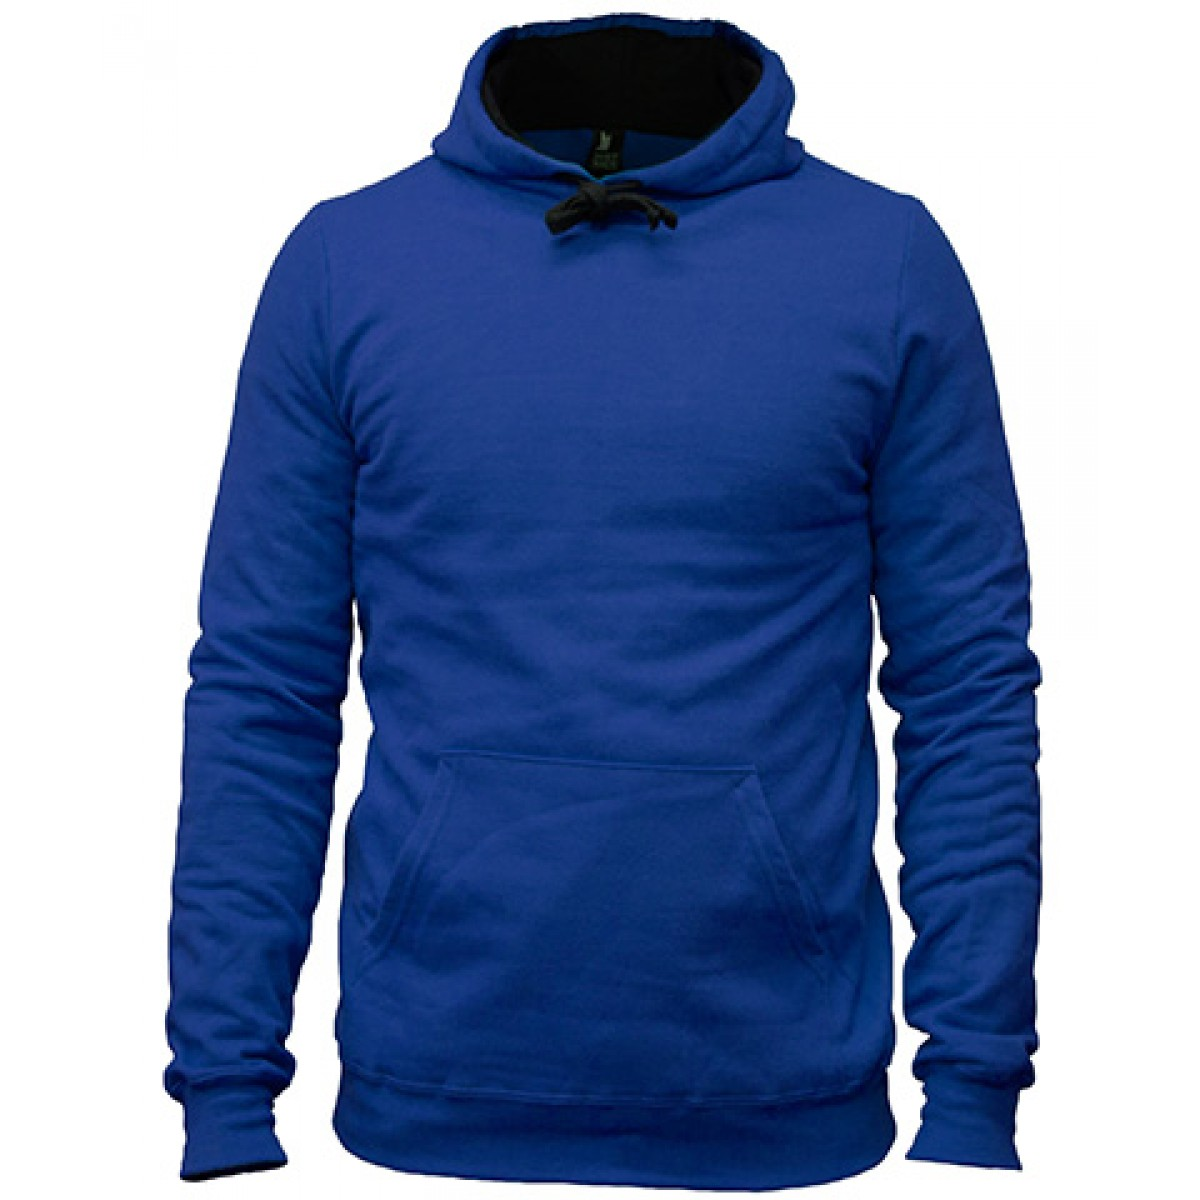 Concert Fleece Hoodie-Royal Blue-3XL